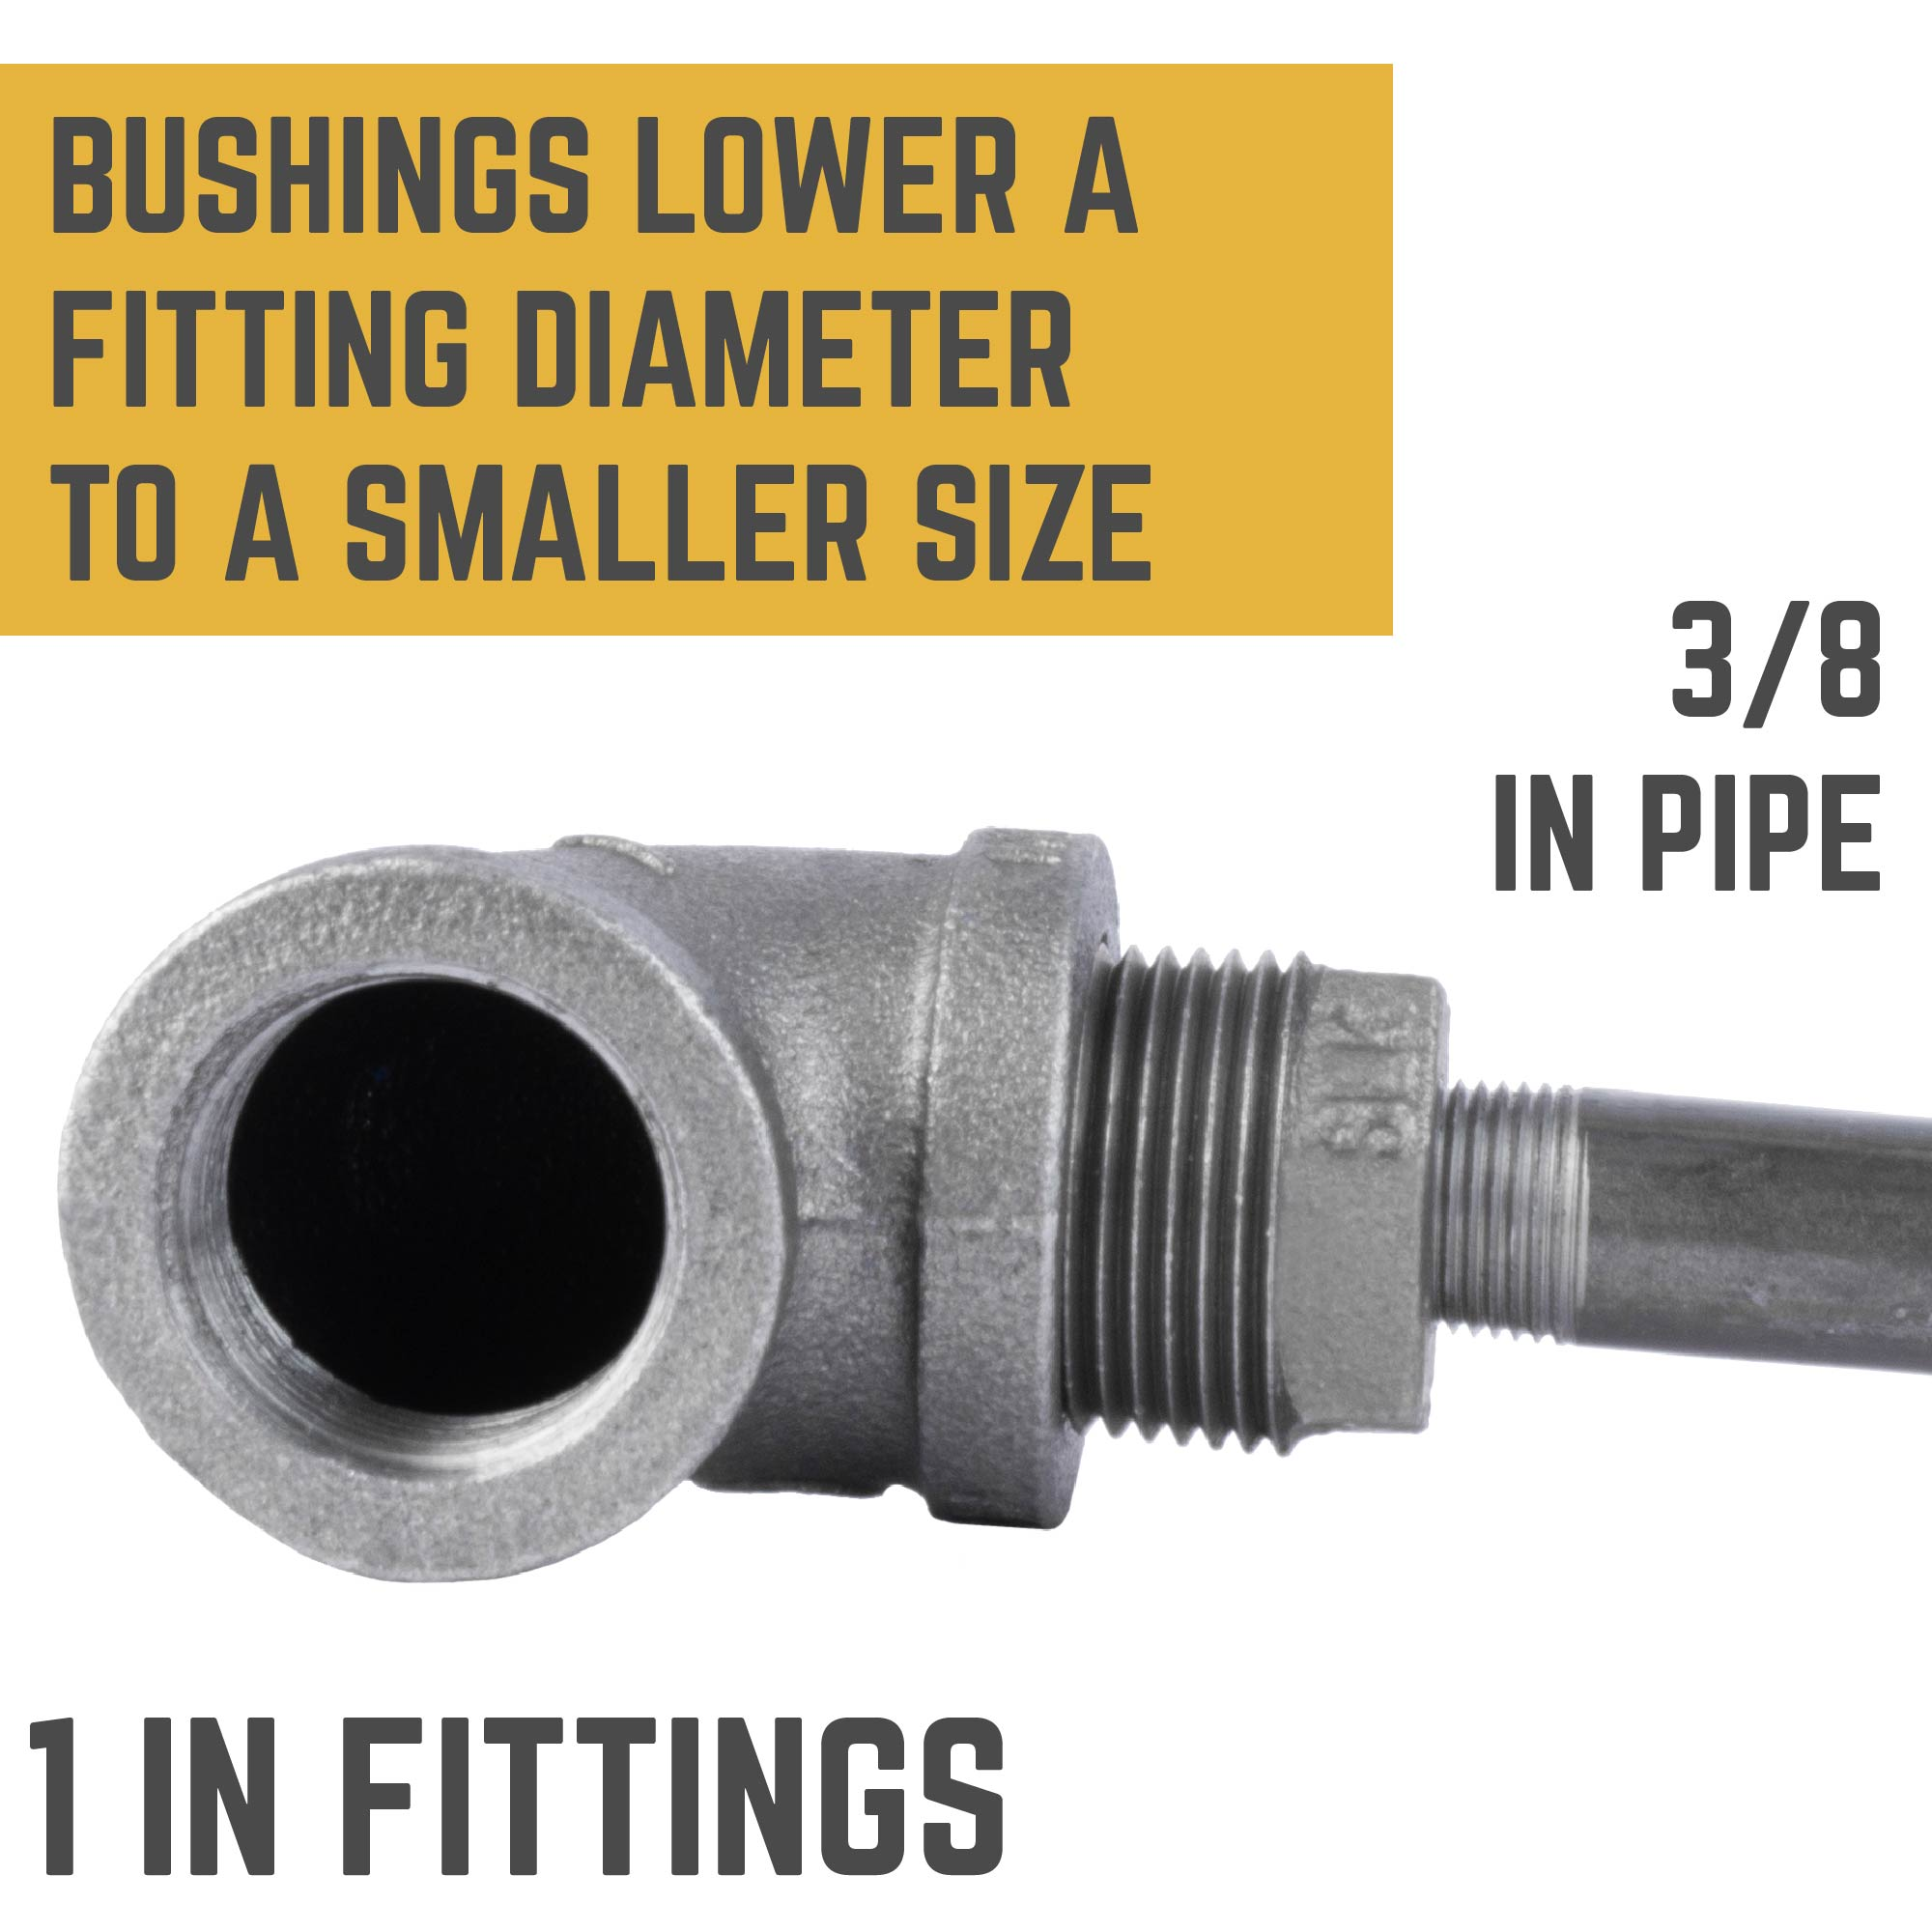 1 in. X 3/8 in. Bushing - Pipe Decor